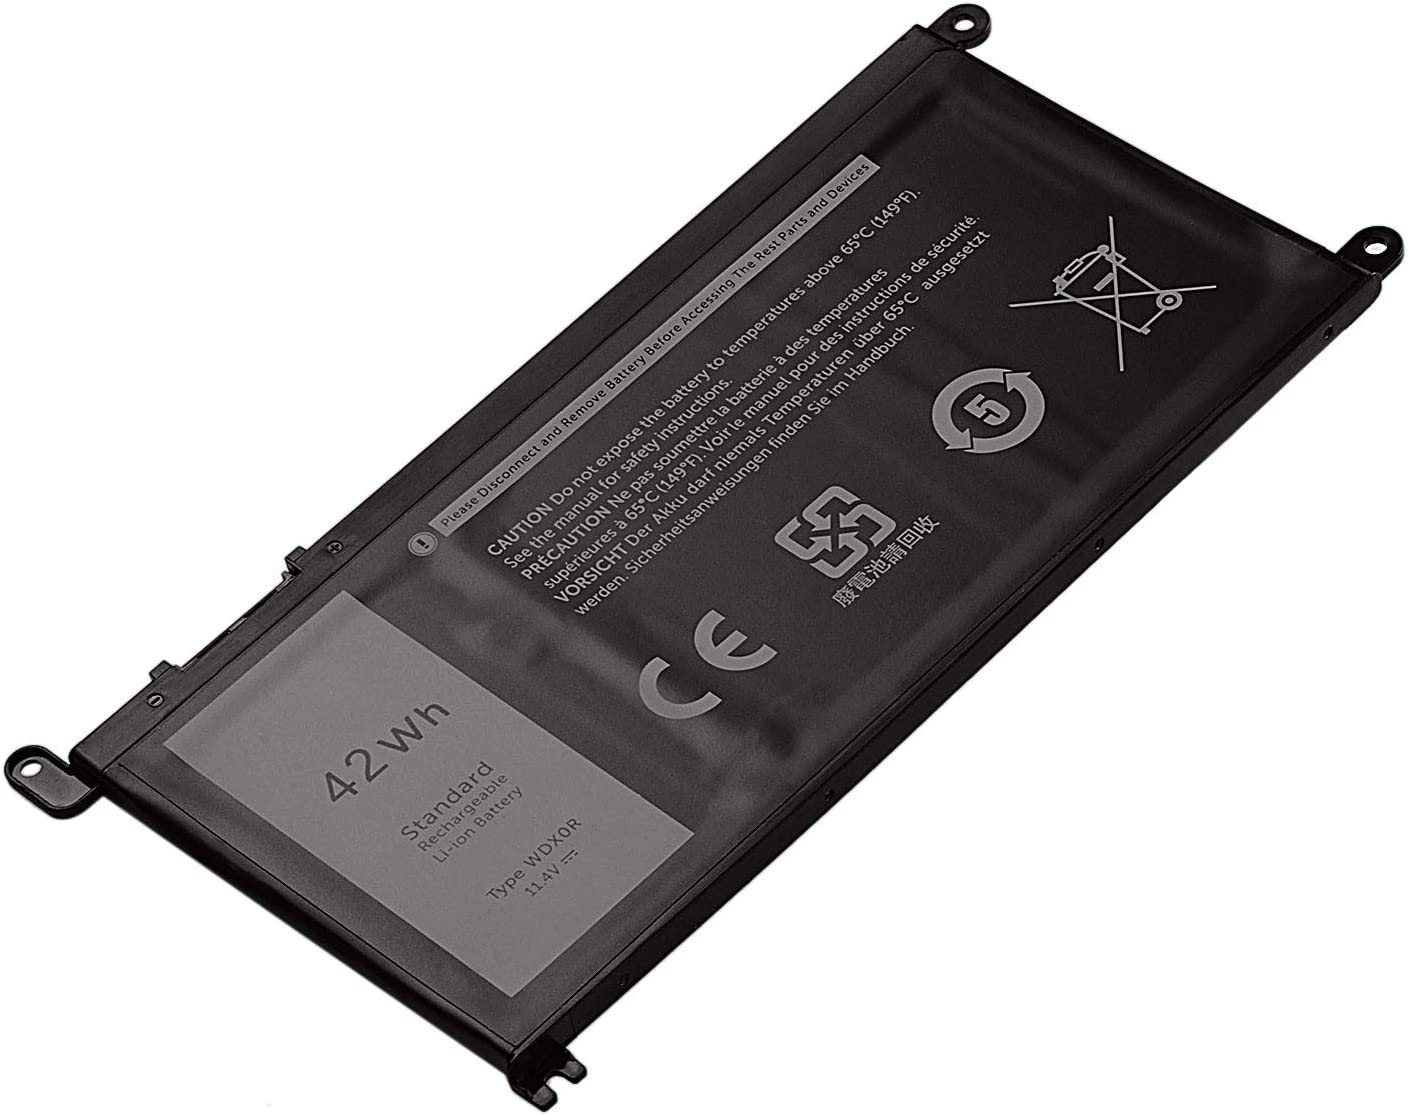 OMCreate Battery WDX0R Compatible with Dell Inspiron 15 5565 5567 5568 5578 7560 7570 7579 7569 13 5368 5378 7368 7378 17 5765 5767 5770 Fits 3CRH3 T2JX4 FC92N CYMGM